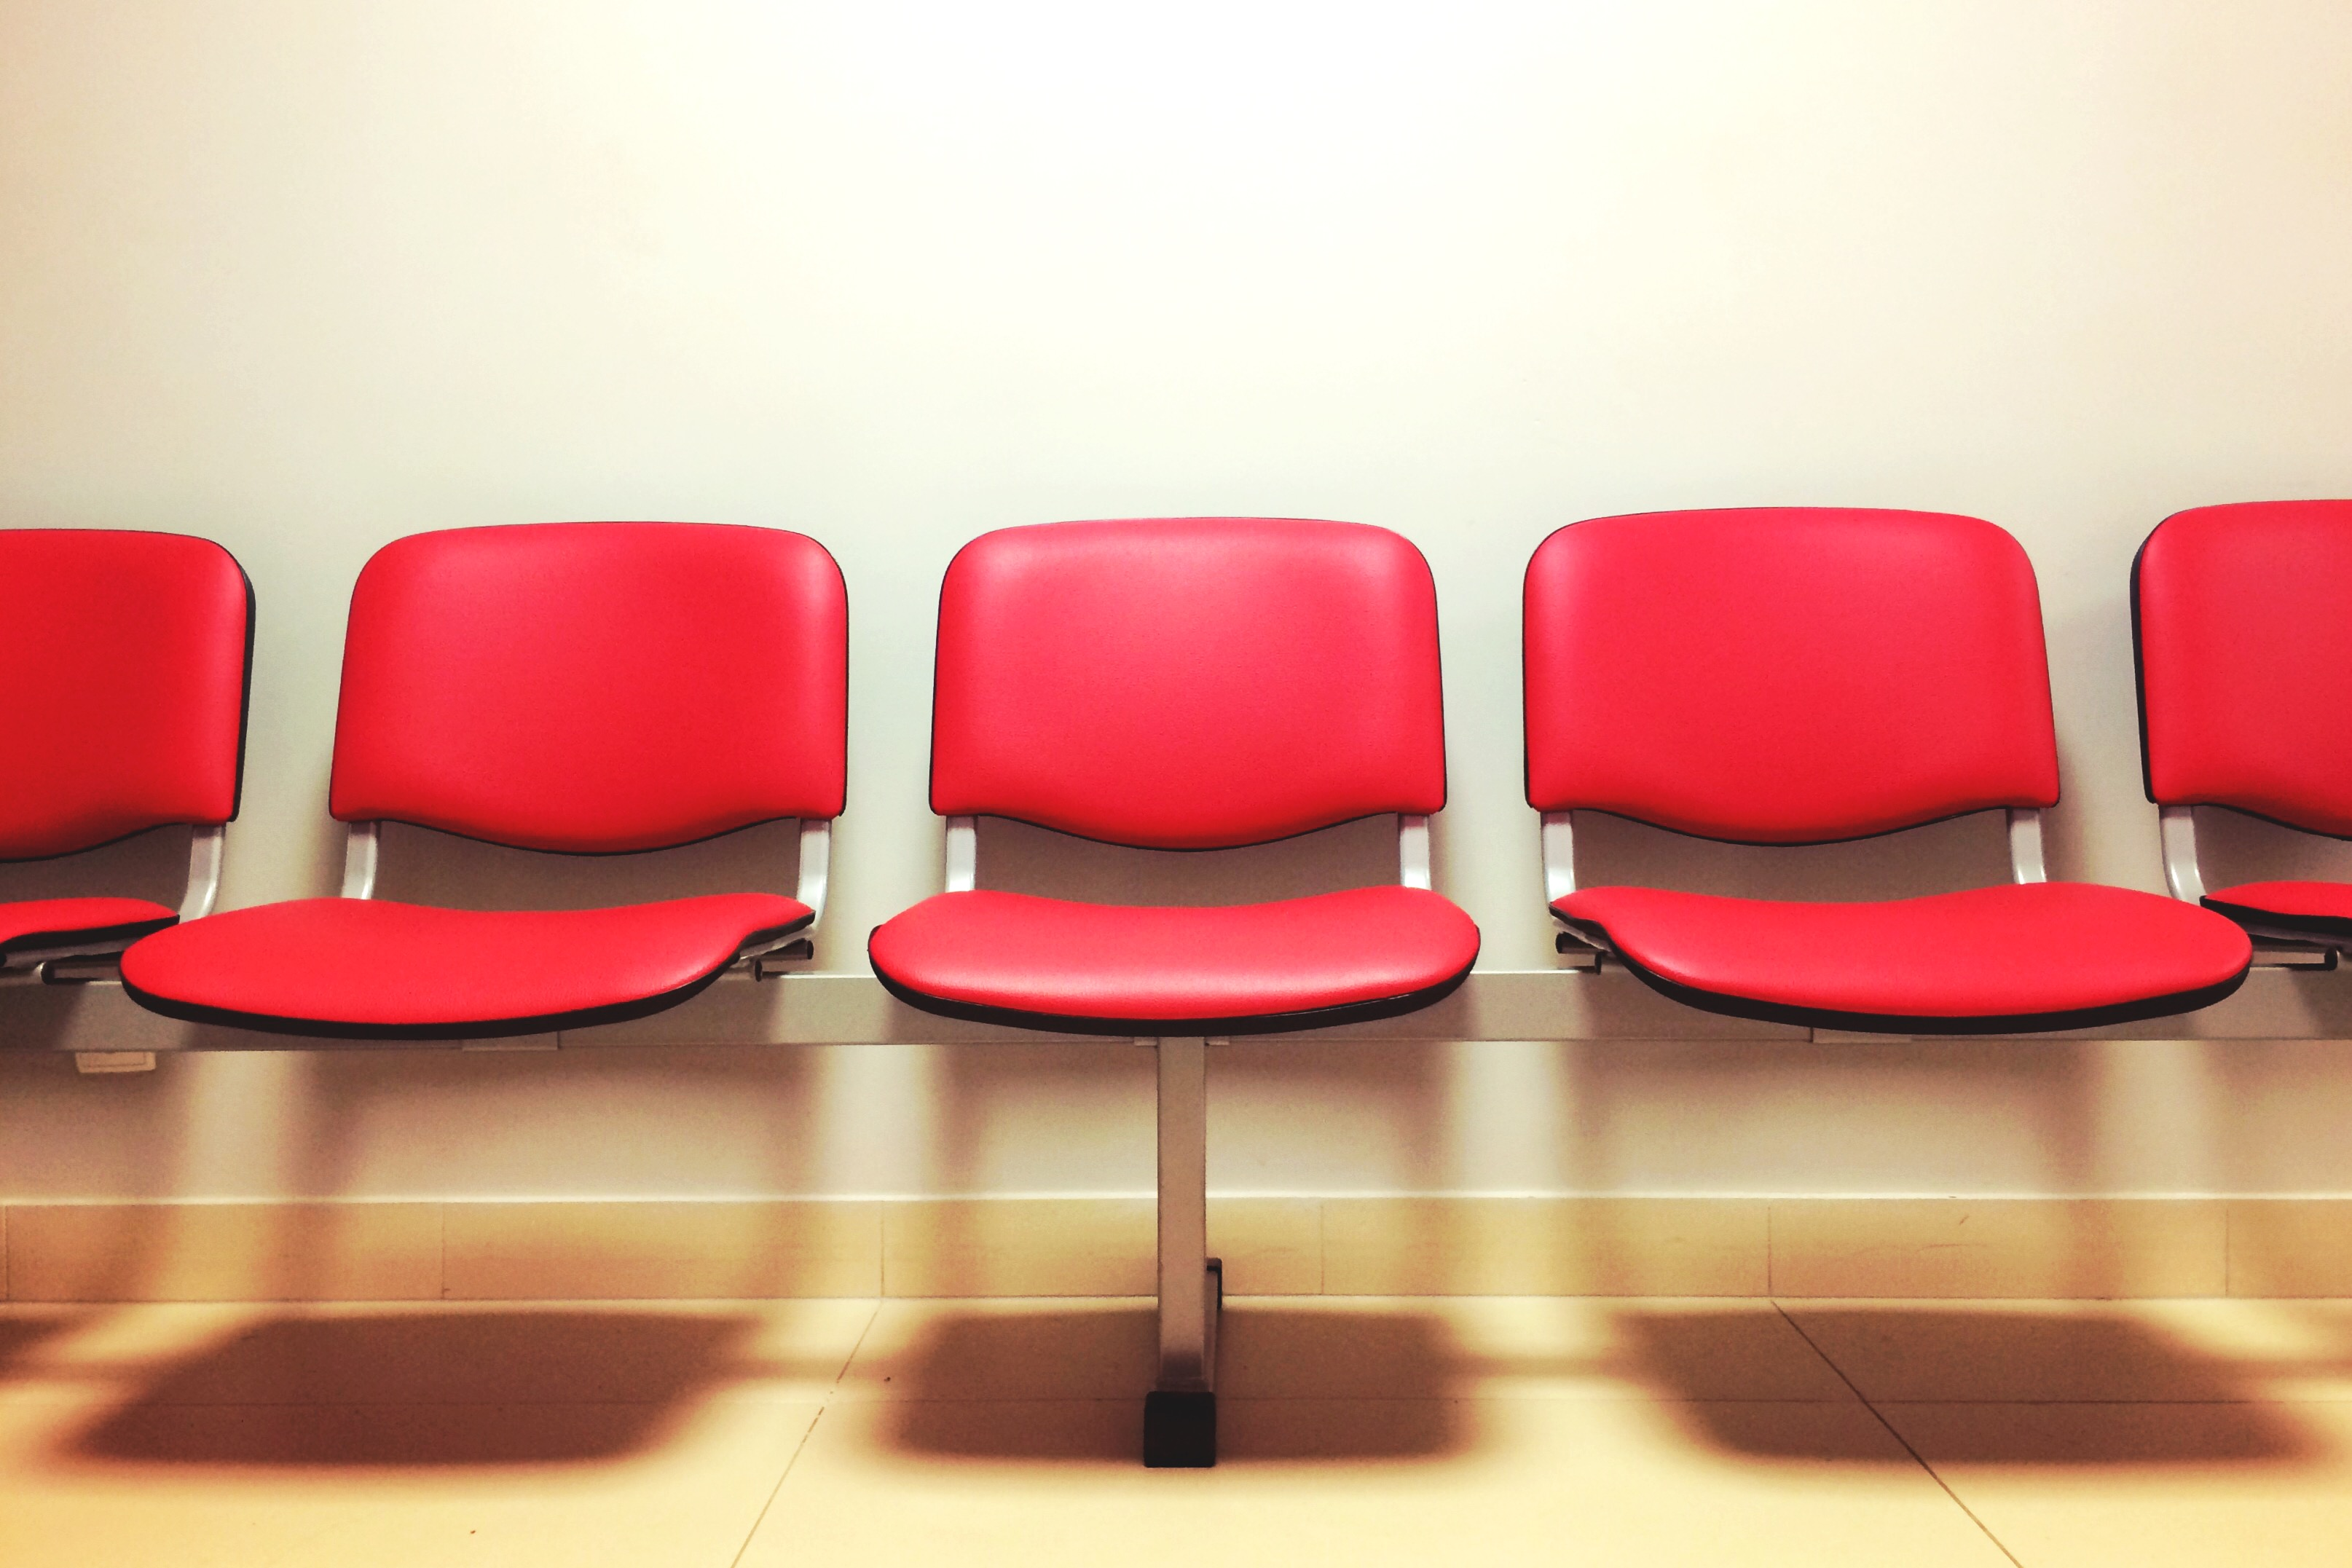 Free stock photo of seats waiting room